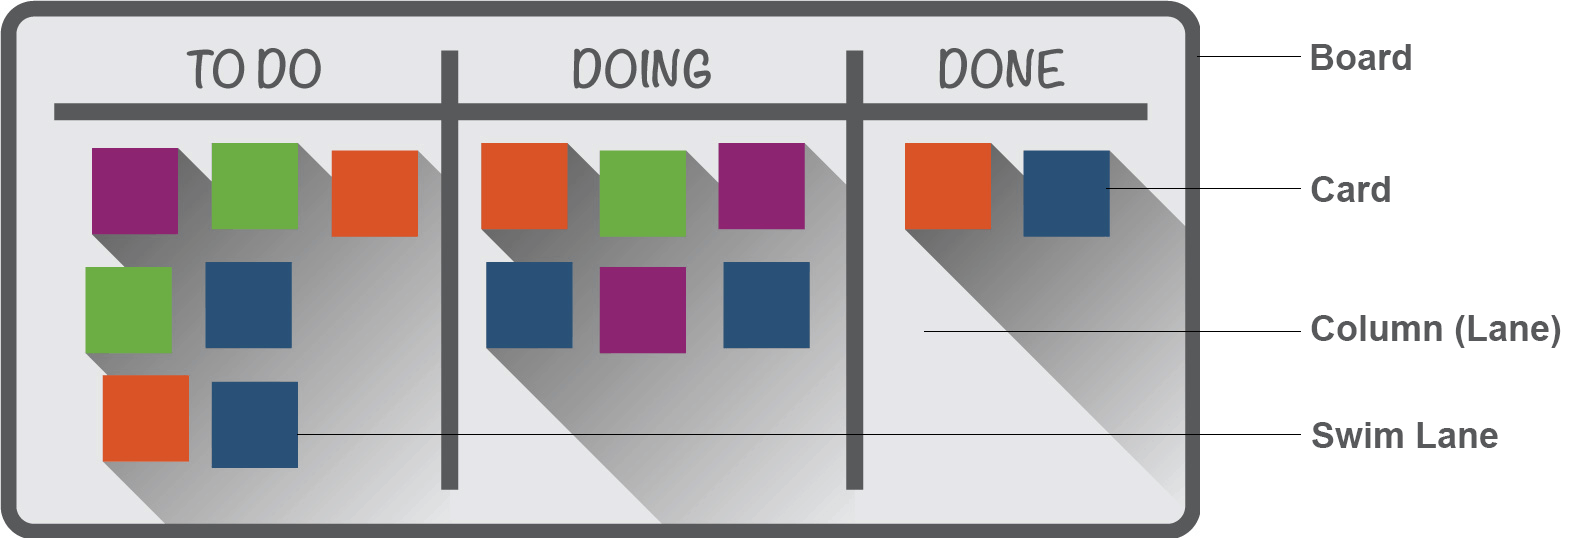 Simple Kanban Labeled